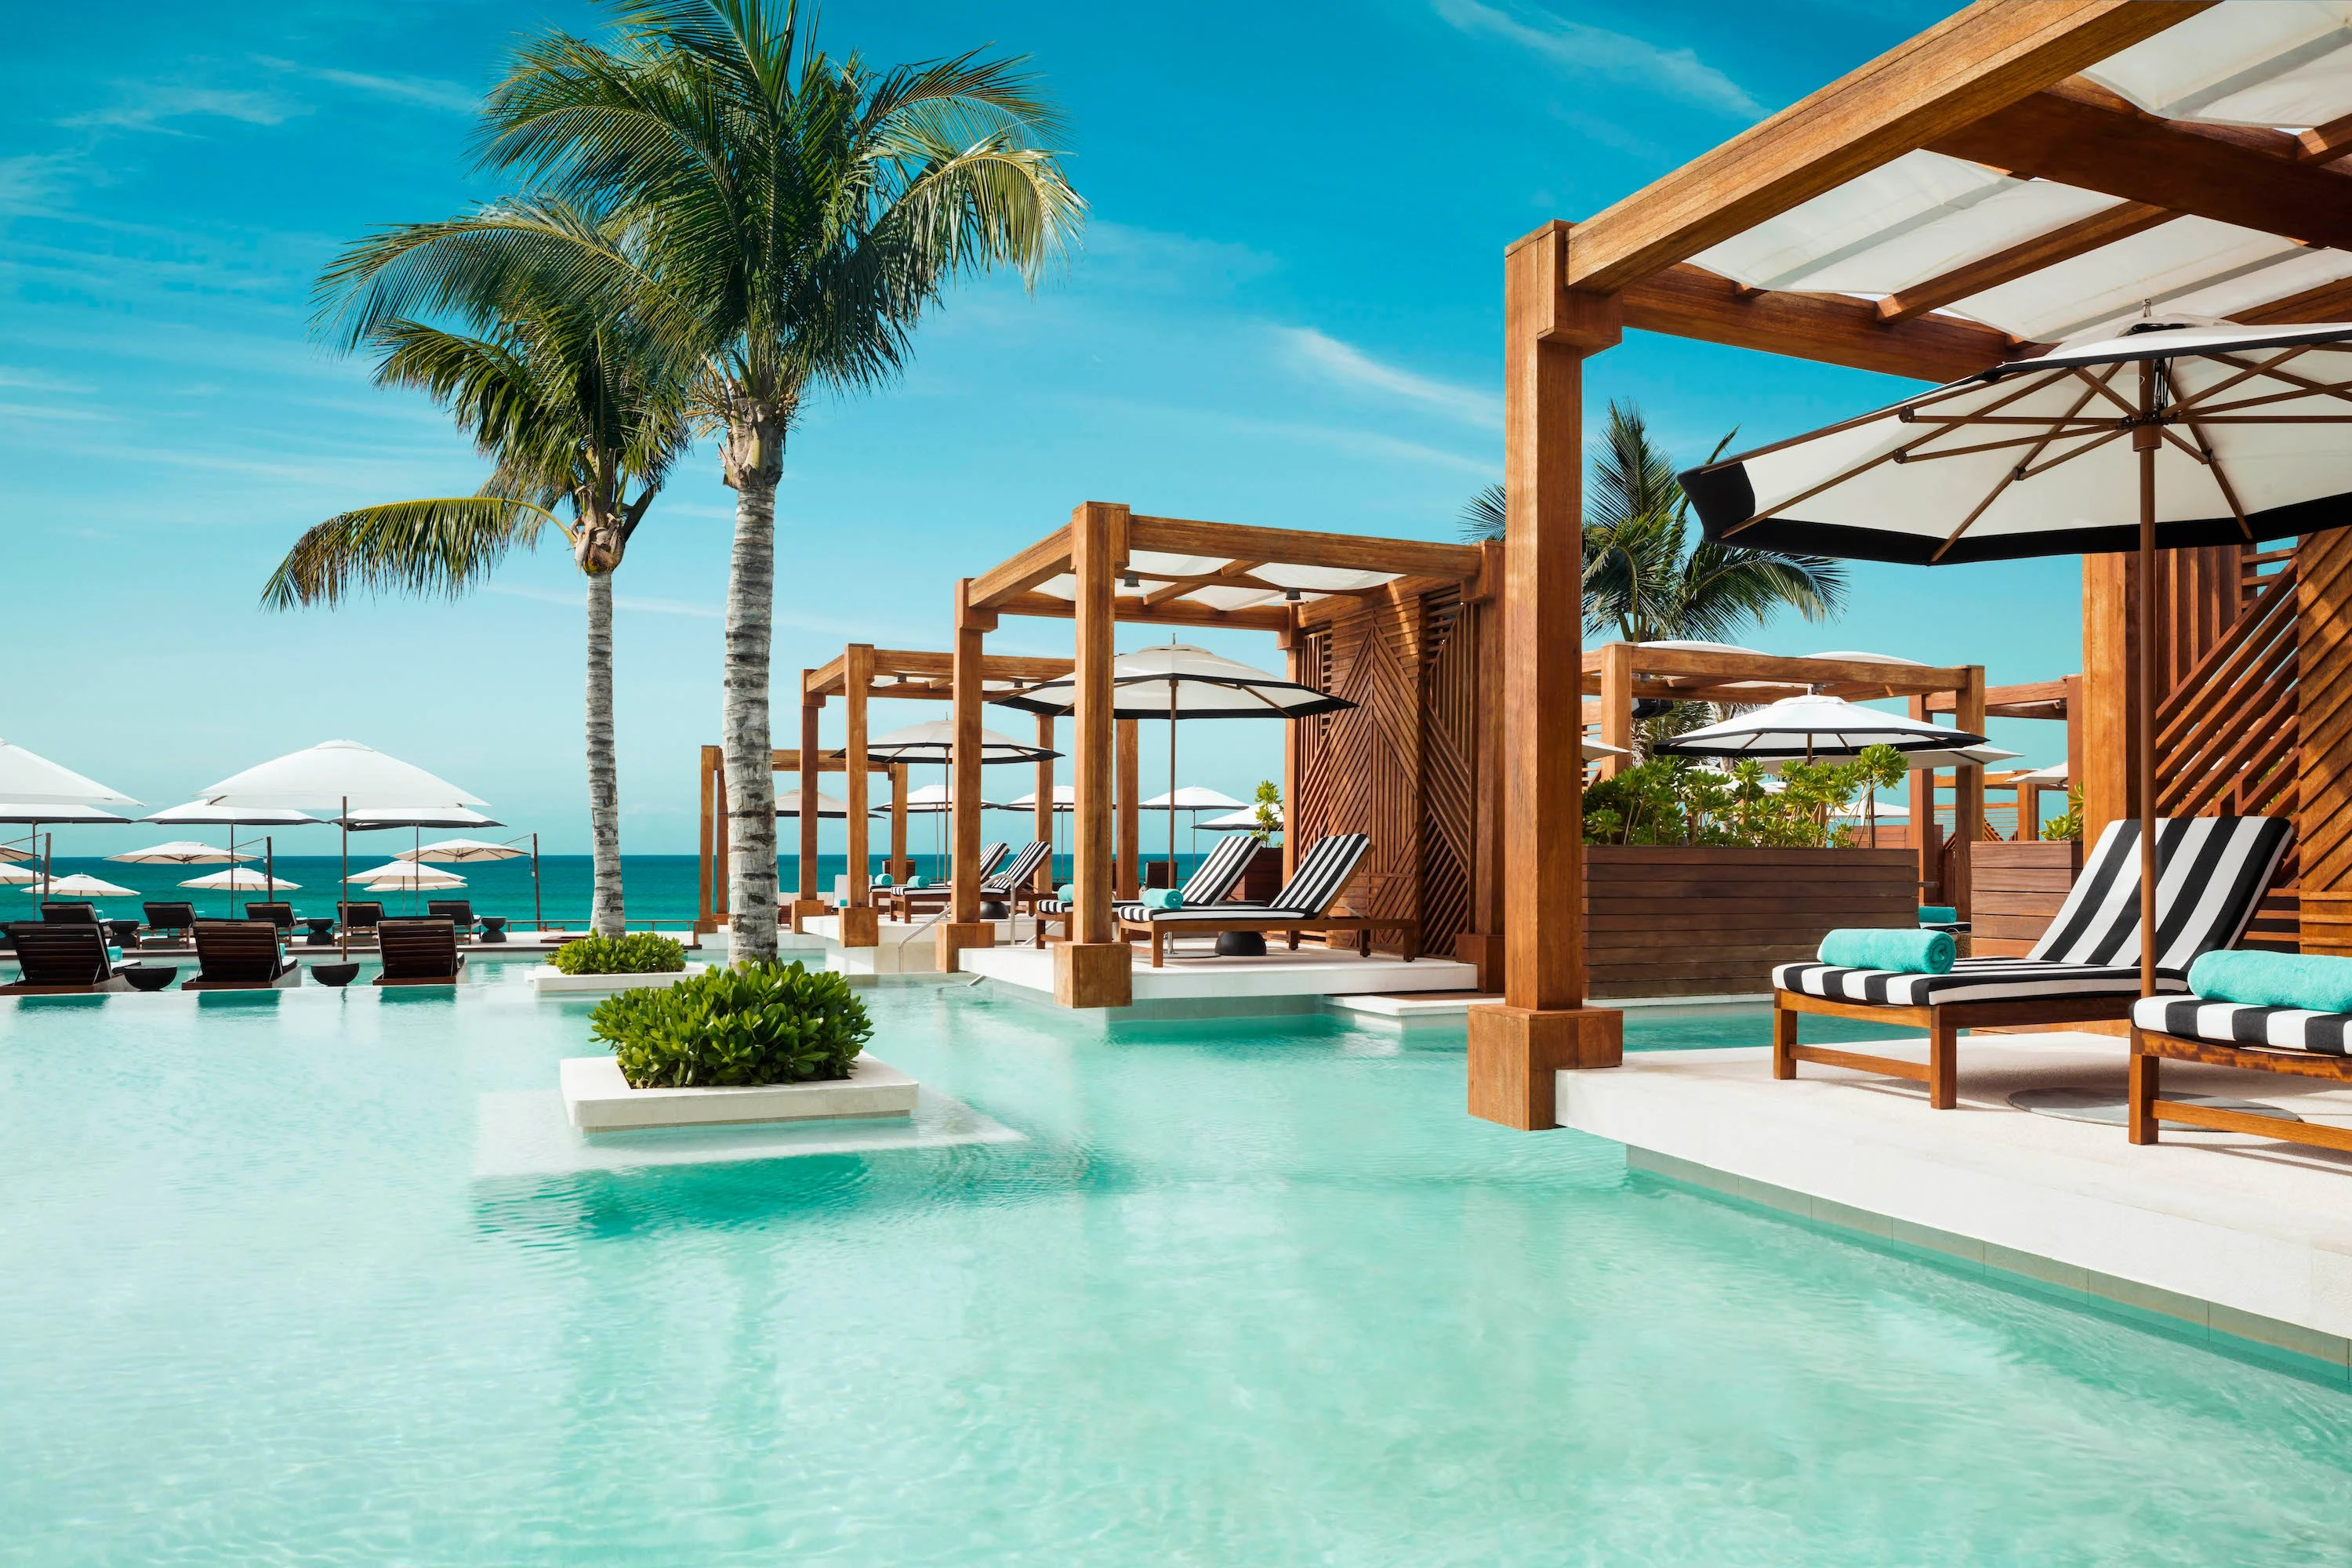 A Luxury Resort Company Wants to Pay You 120000 to Be a